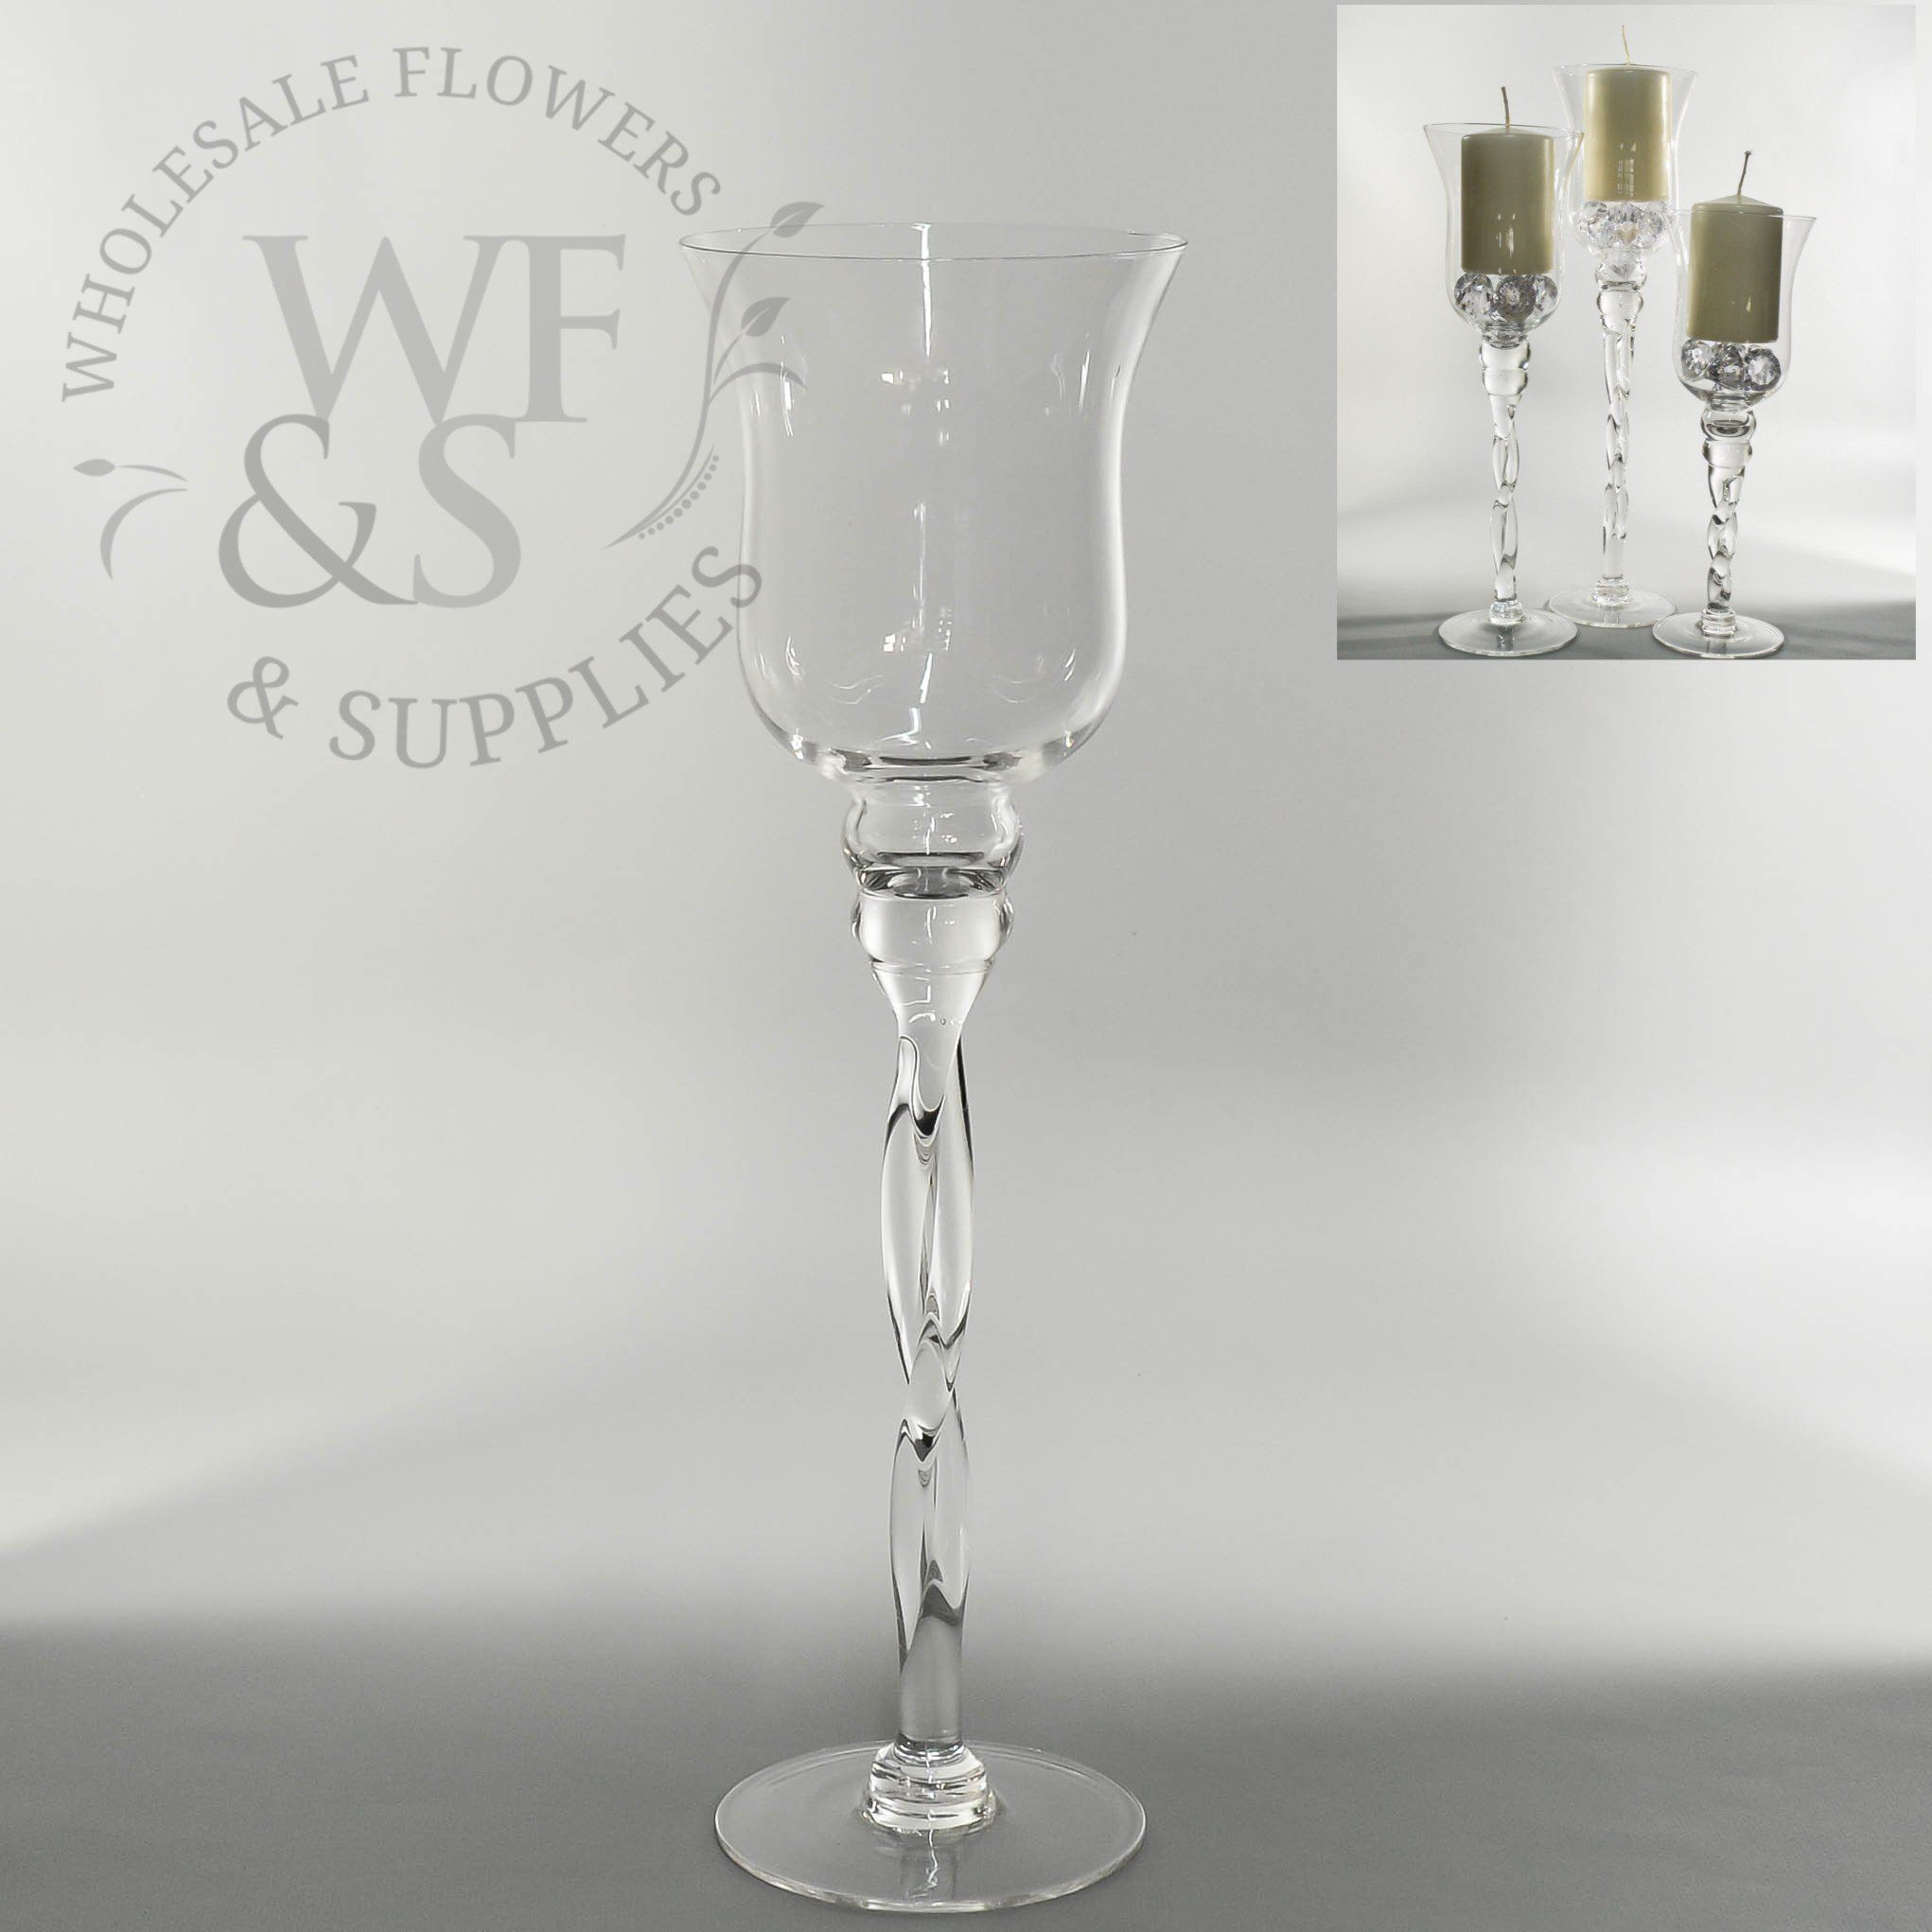 3 foot tall wine glass vases of twisted clear glass vase candle holder 15 7 holidays pinterest throughout twisted clear glass vase candle holder 15 7 wholesaleflowersandsupplies com